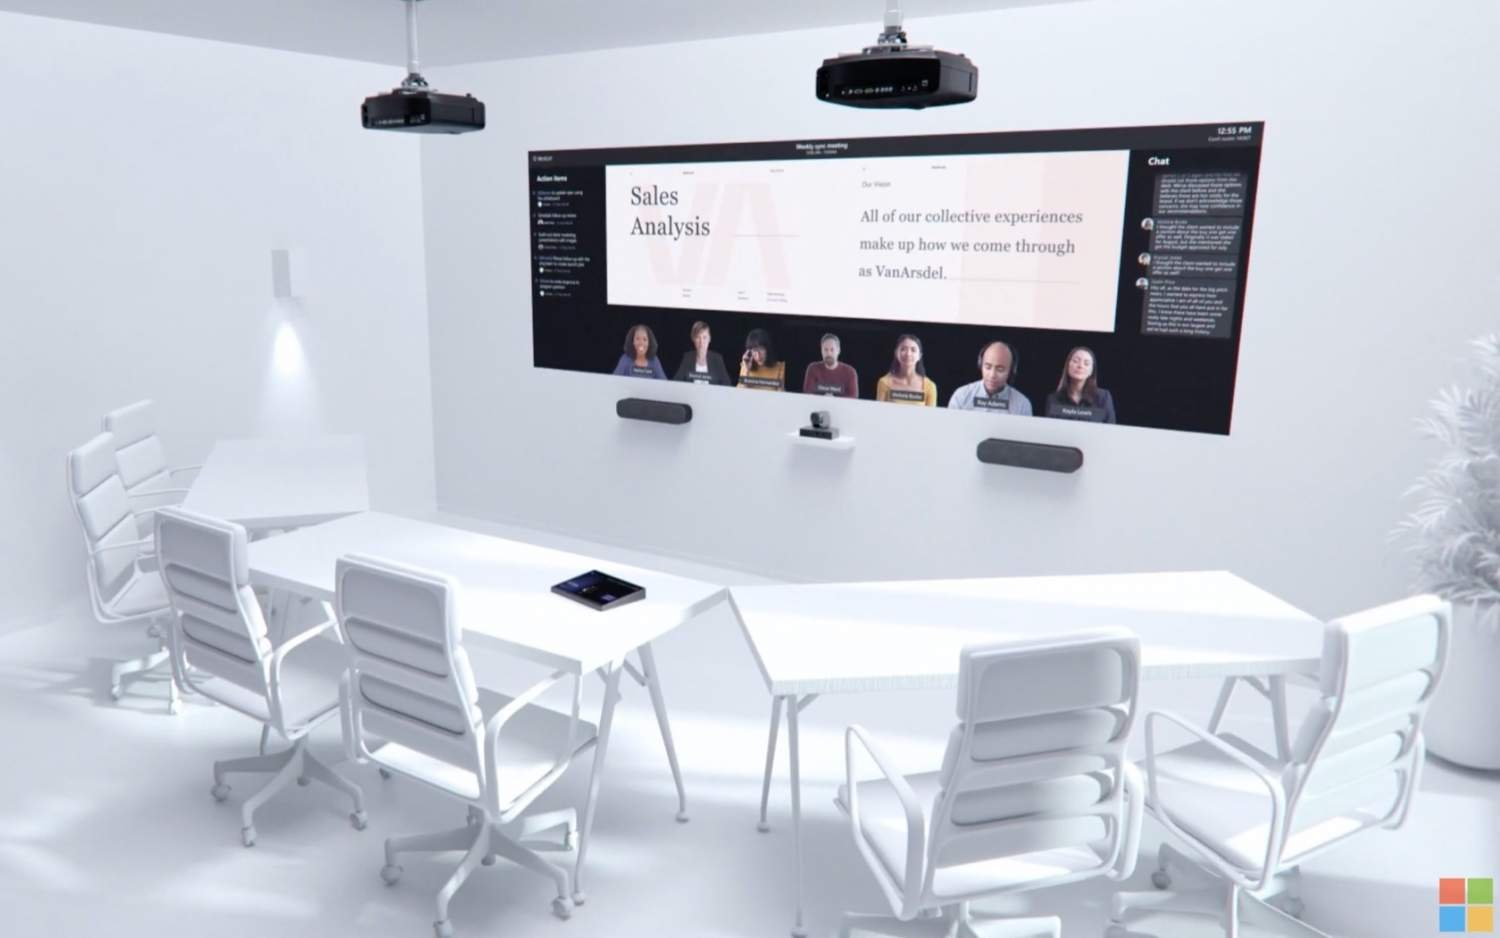 Microsoft's hybrid office vision involves big faces and vaccine verification